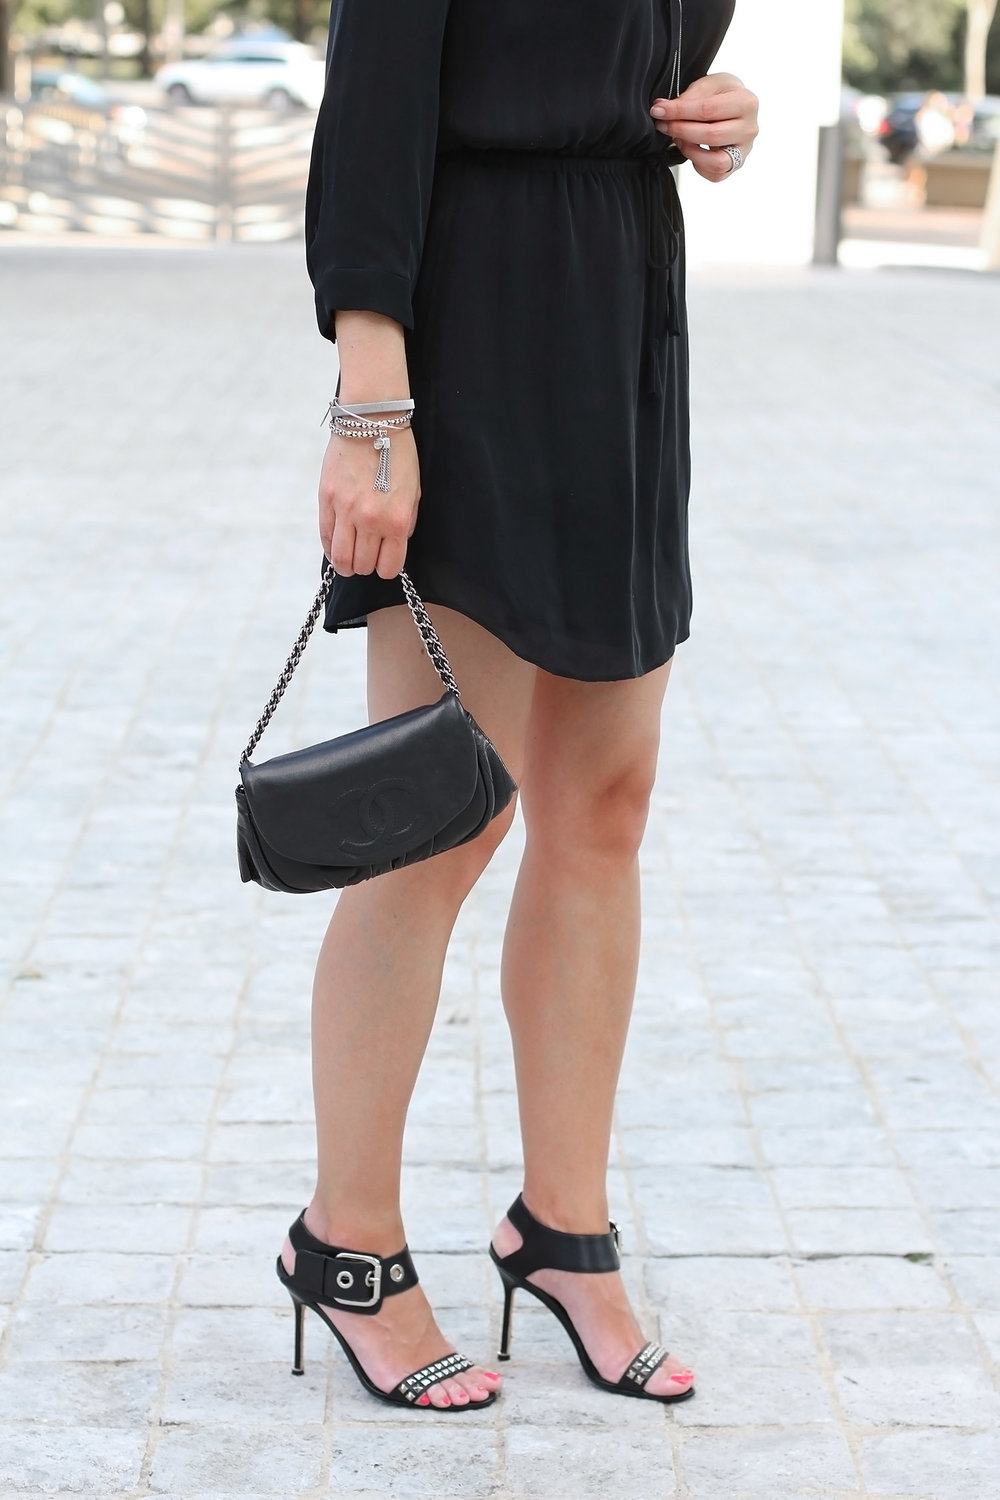 Studded Summer Heels, Aritzia Black Dress